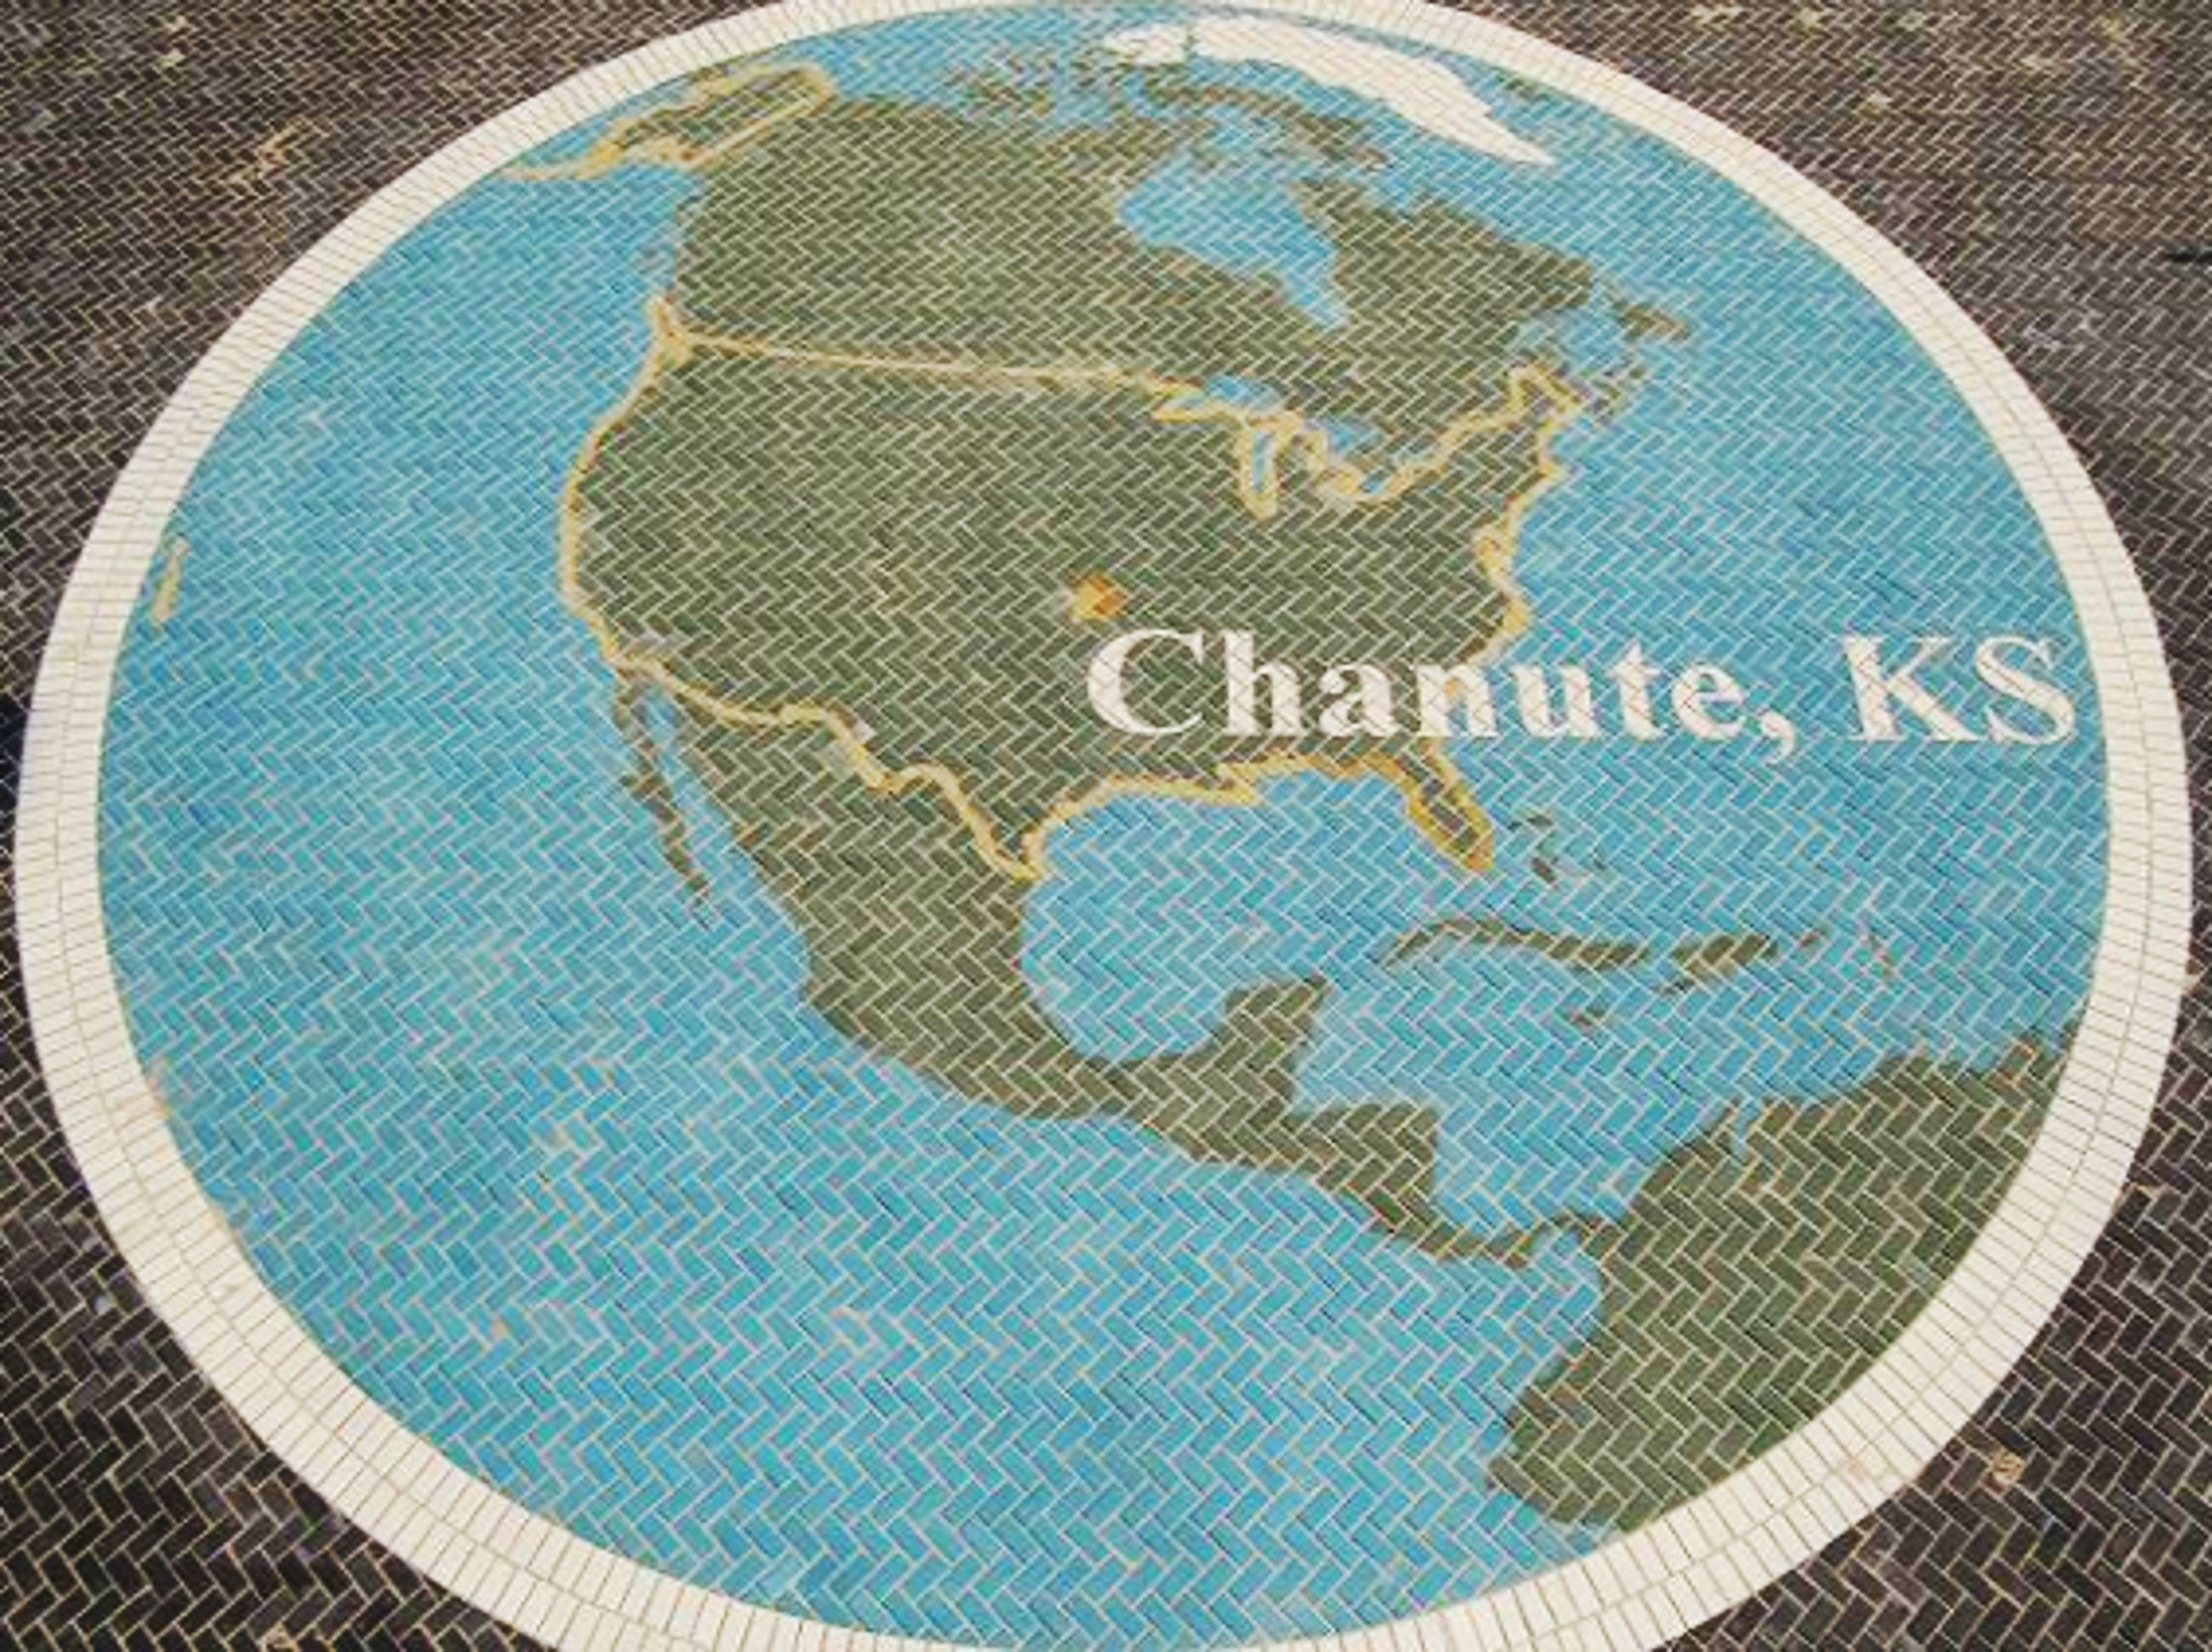 Chanute Kansas Map.Chanute Ks Official Website Official Website